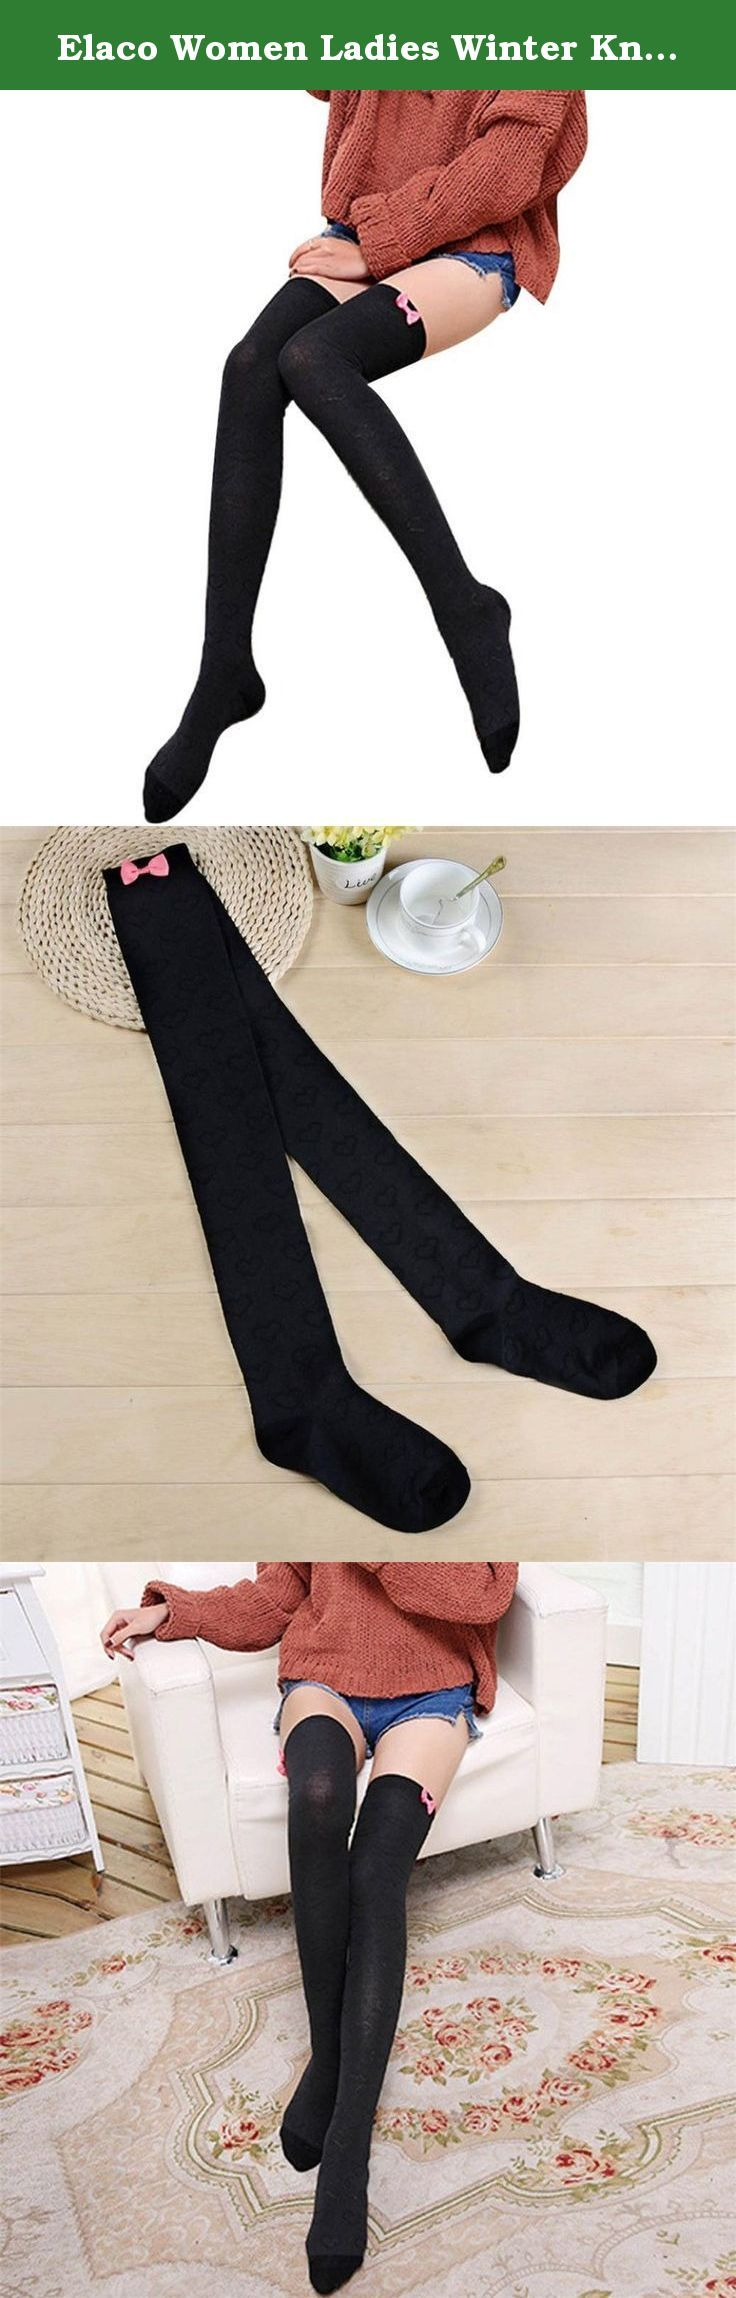 Elaco Women Ladies Winter Knit Over The Knee Socks Thigh High Cotton Boot Stockings (Black). 100% new and high quality! Material:Cotton Size:Foot plate 19.5CM + stockings 52CM One size fit most,stretchy Soft and fashionable cable knit leg warmers. Very comfortable Stretch Fabric,a perfect gift to yourself or friends. Pls Note:Different computer have different monitor,the color may be a little difference. Thanks for your understandings. Package Content: 1 pair Socks.